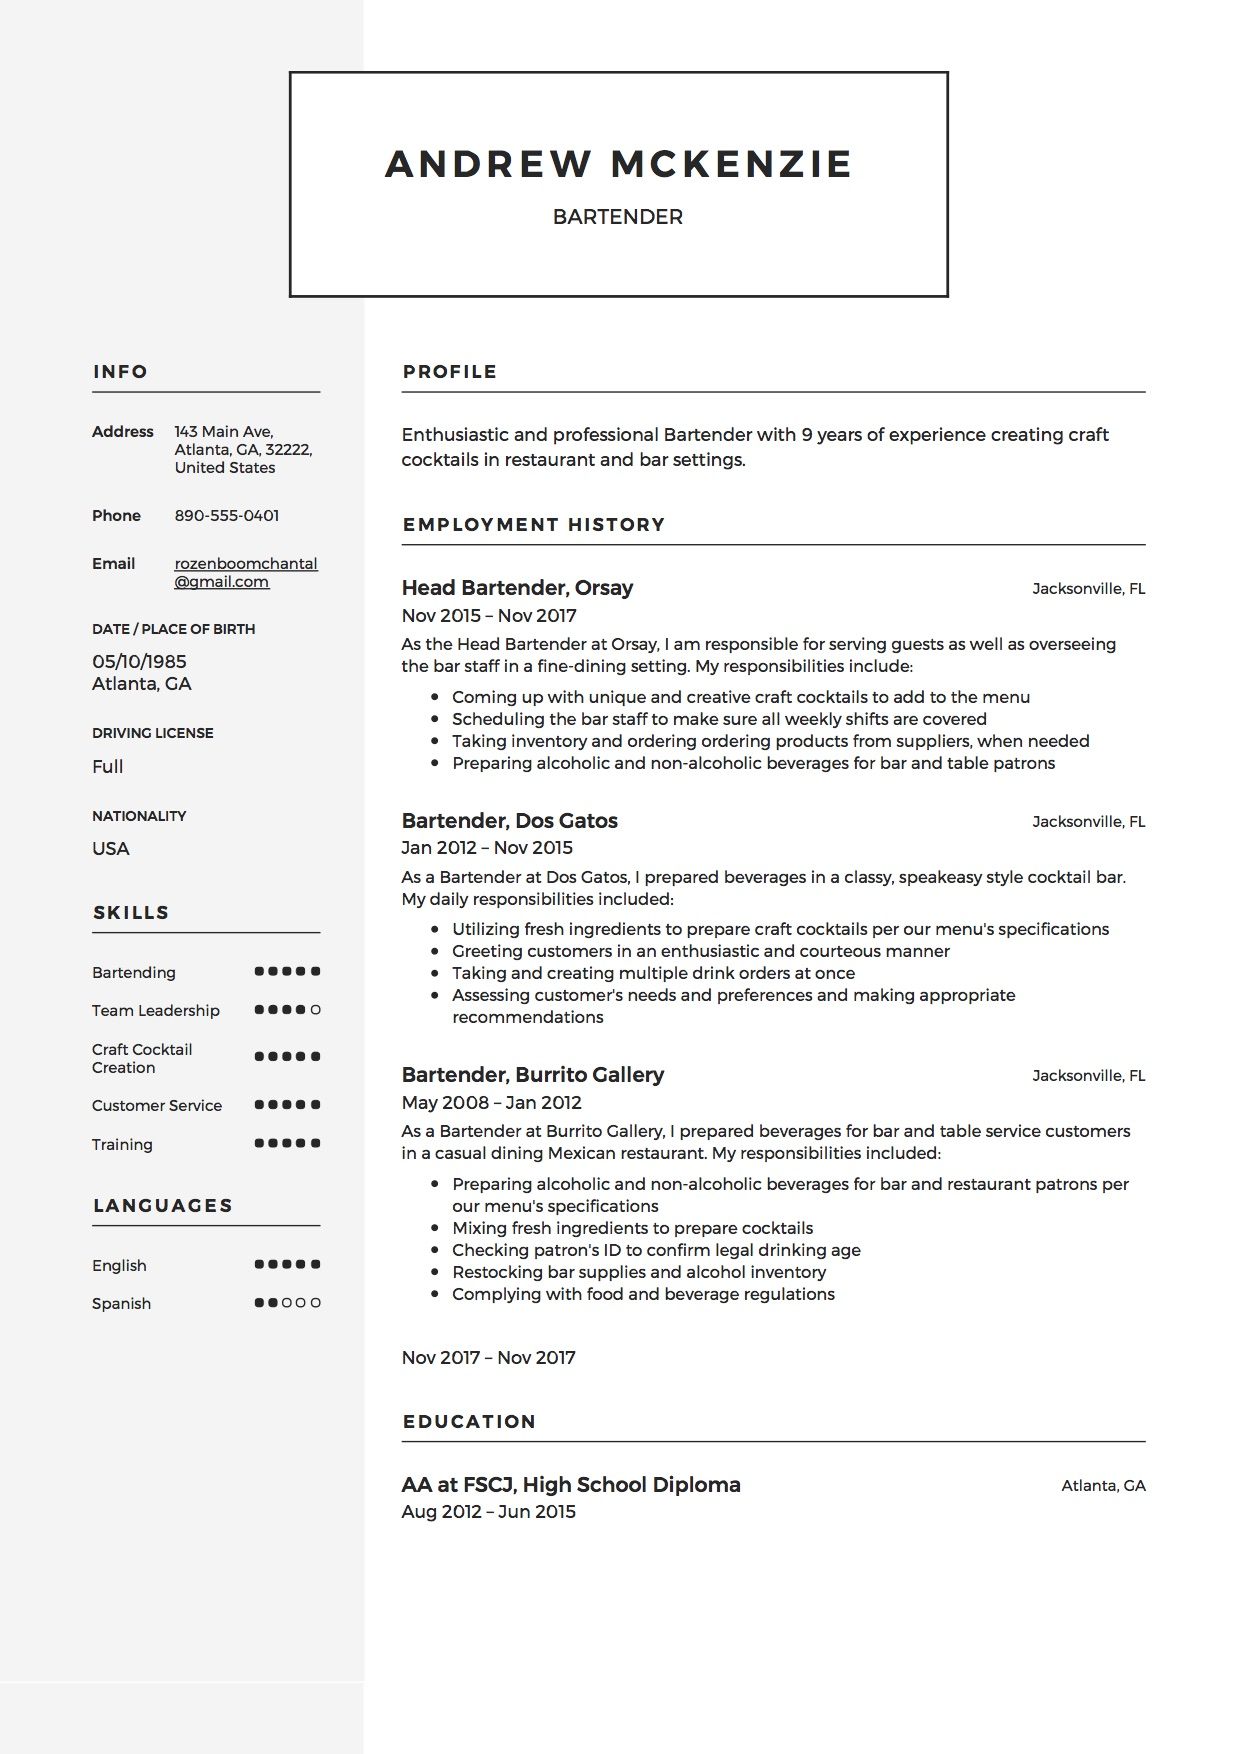 Bartender Resume [+ 12 Samples] | 2019 | Free PDF & Word ...